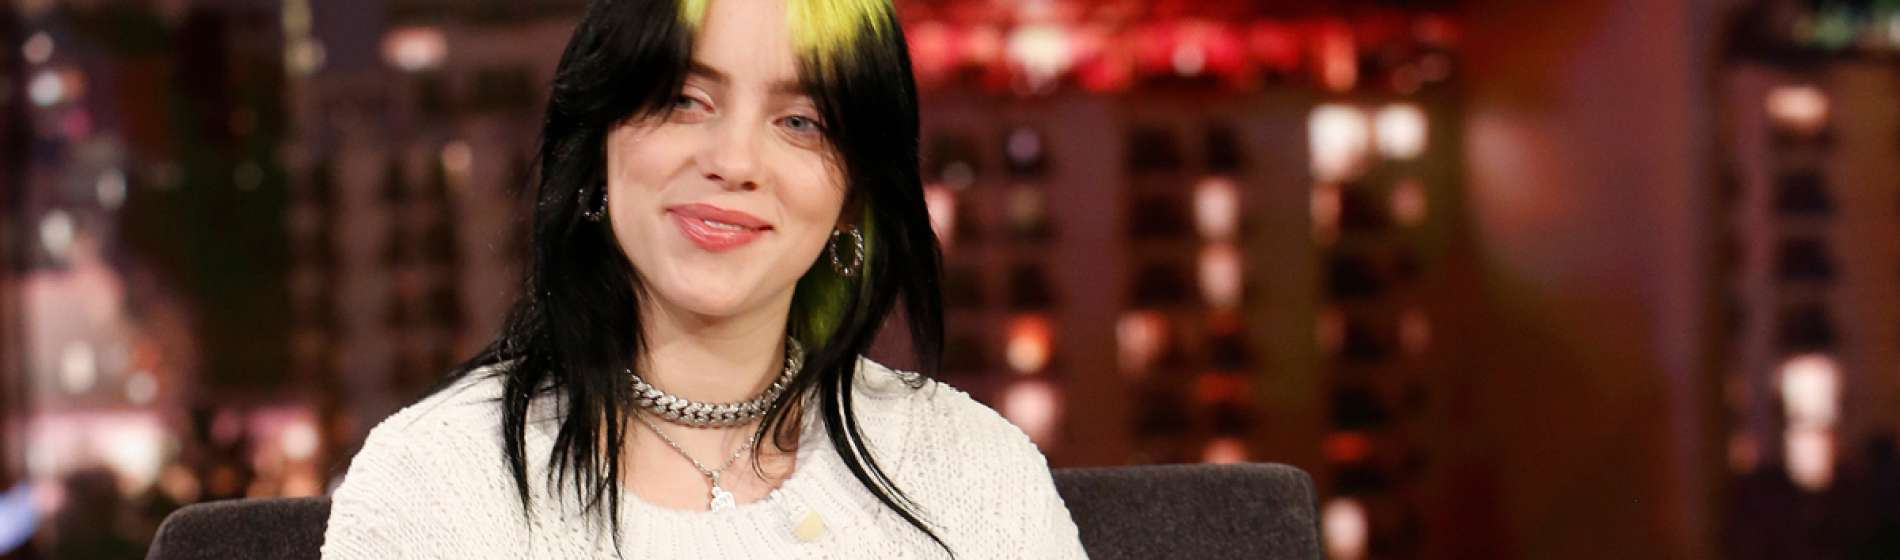 Billie Eilish Jimmy Kimmel